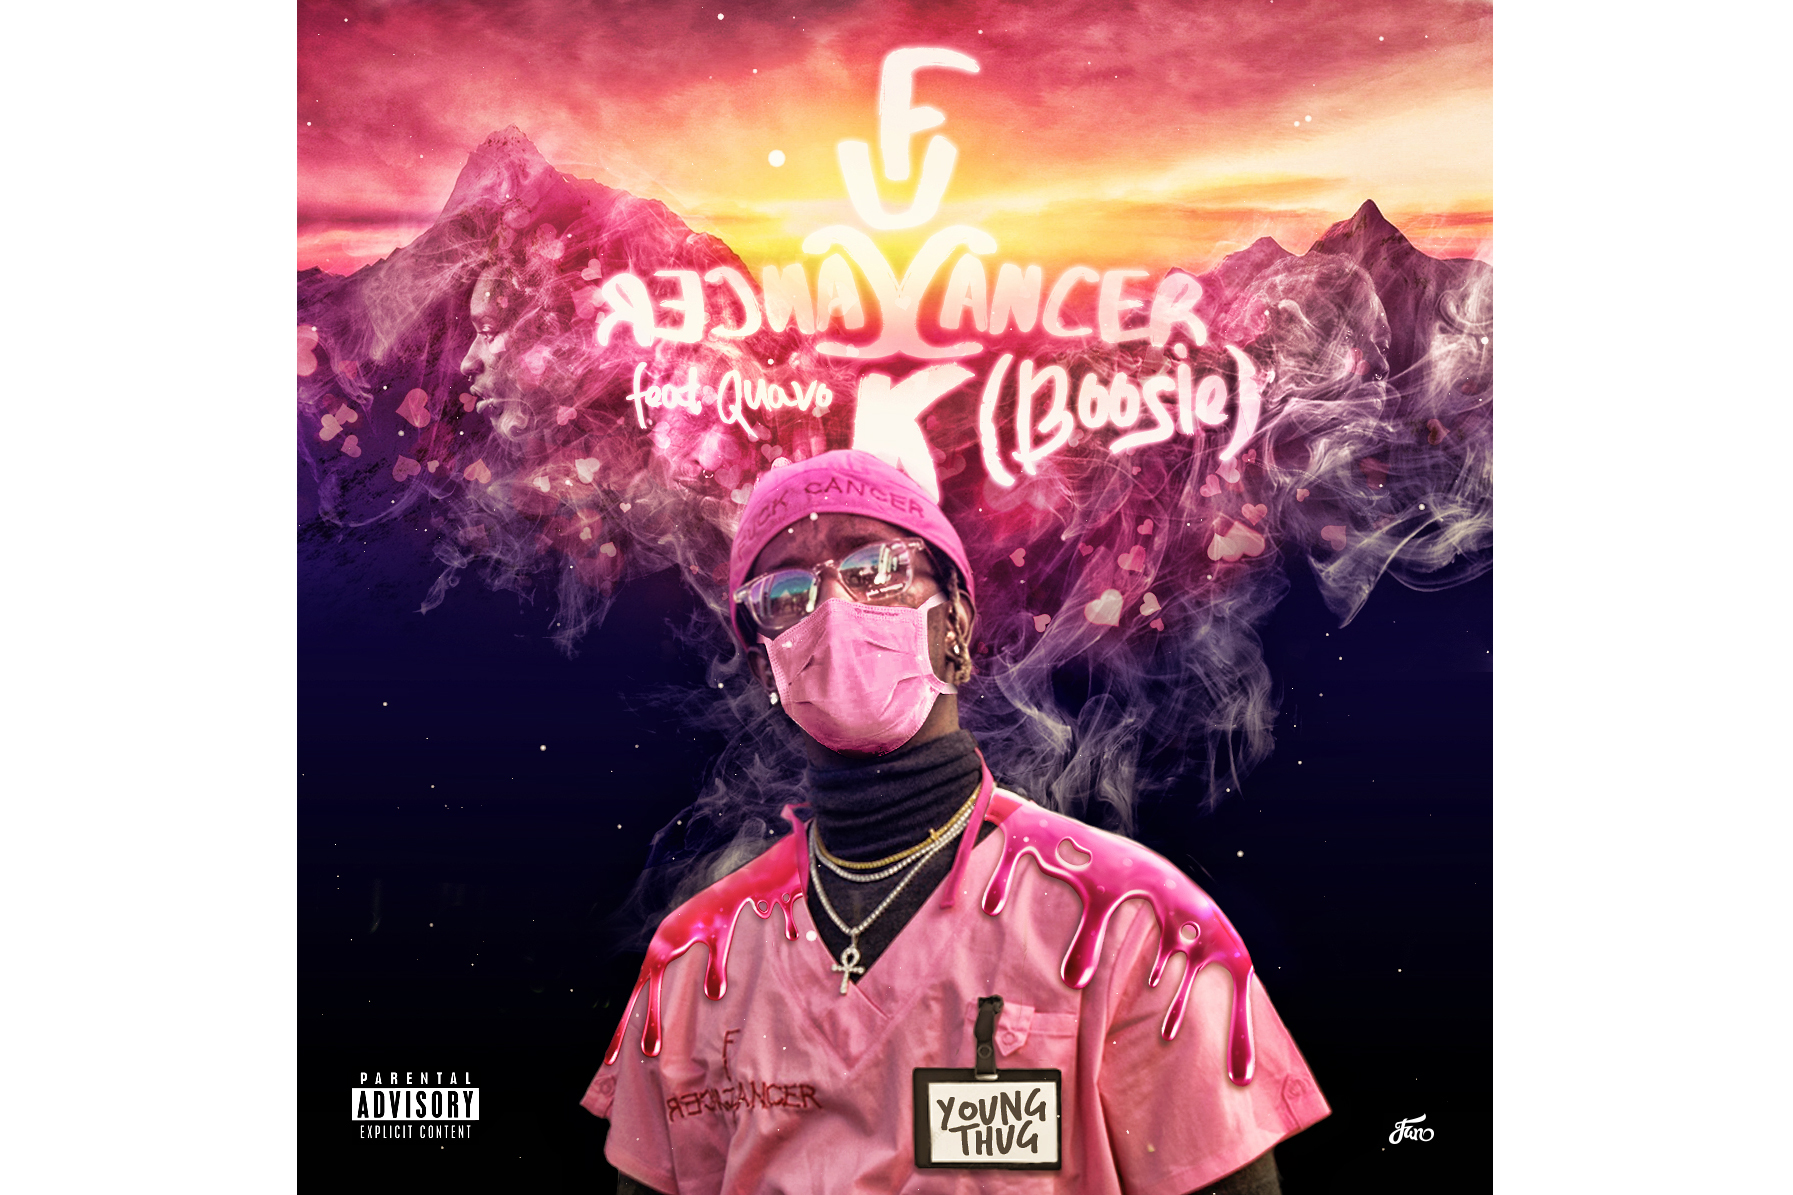 """Young Thug Voices His Thoughts on Cancer With New Track """"F Cancer"""" Featuring Quavo"""